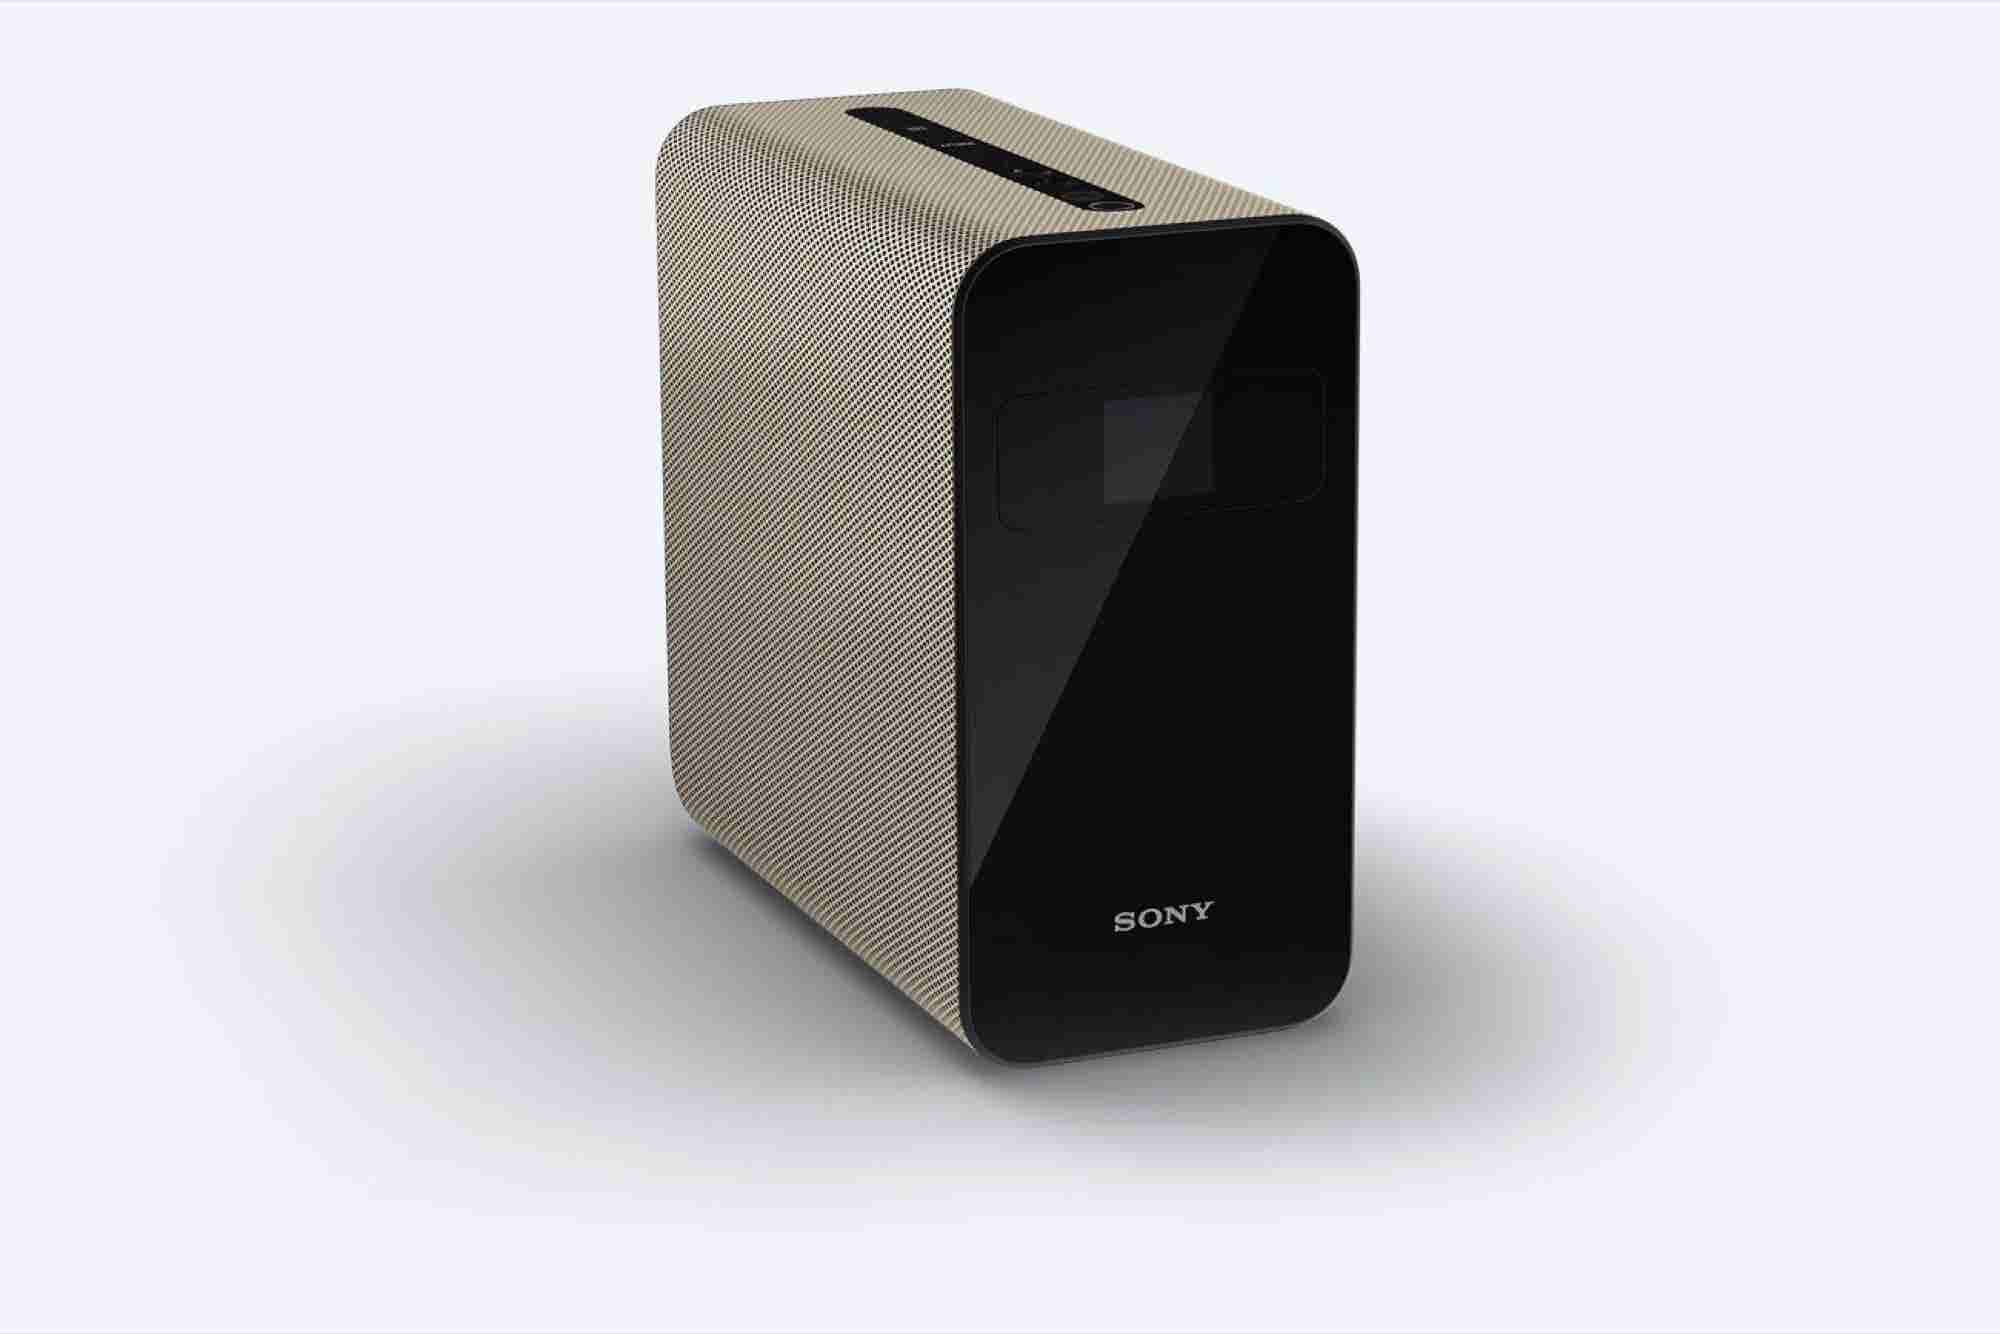 Sony's New Xperia Touch Adds A Whole New Dimension To Your Life